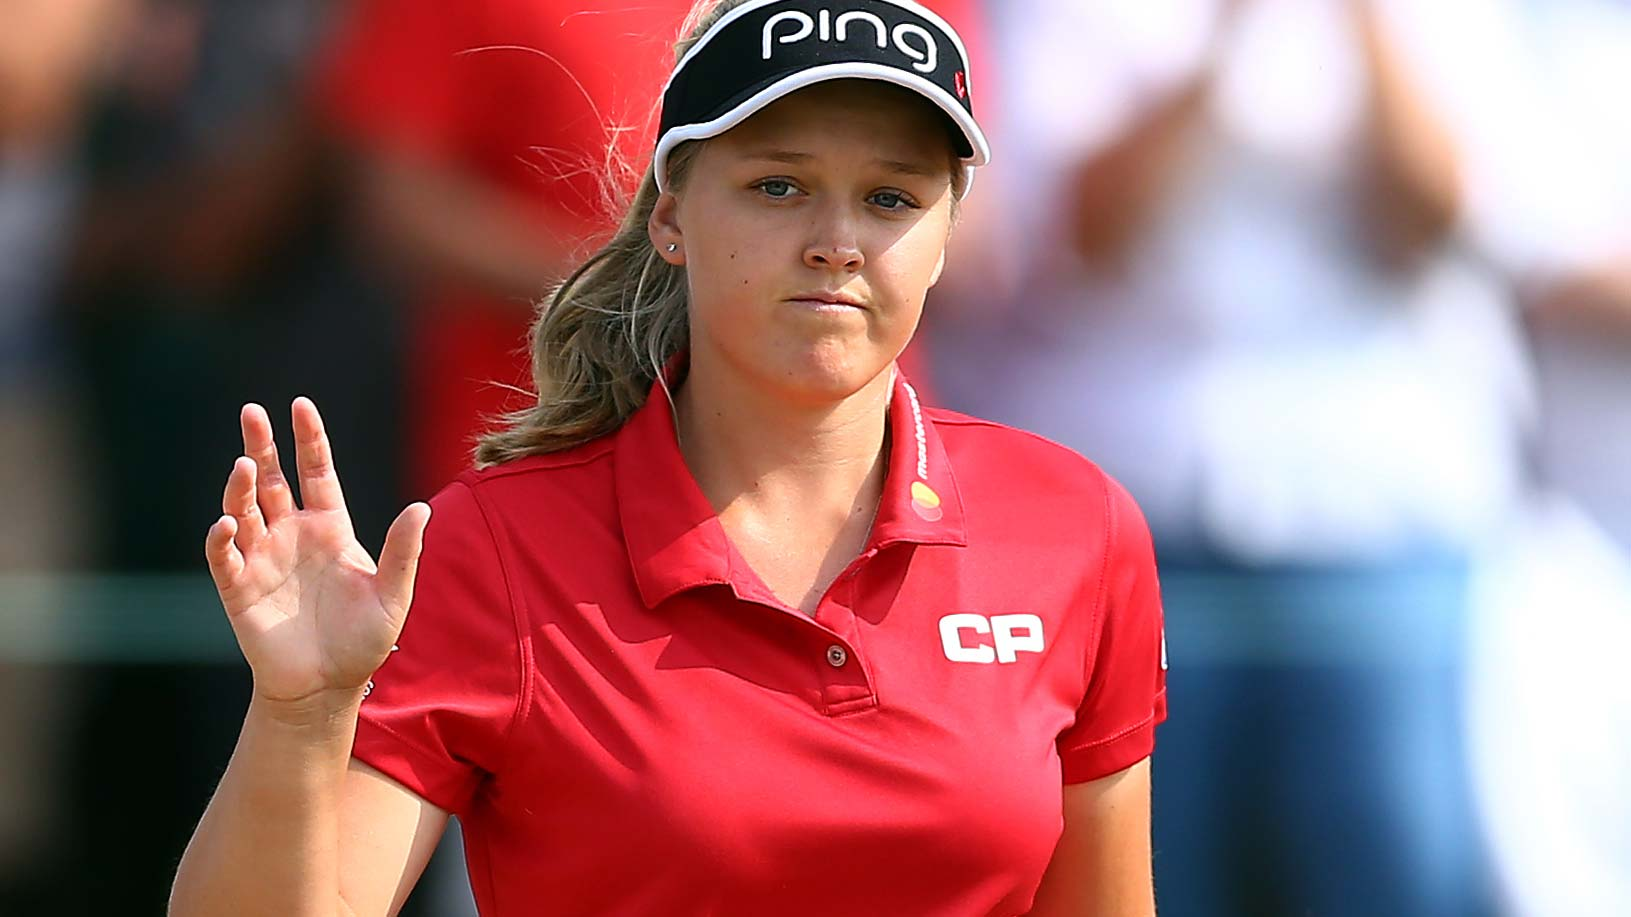 Brooke Henderson of Canada reacts to fans applause on the 17th hole during the second round of the CP Womens Open